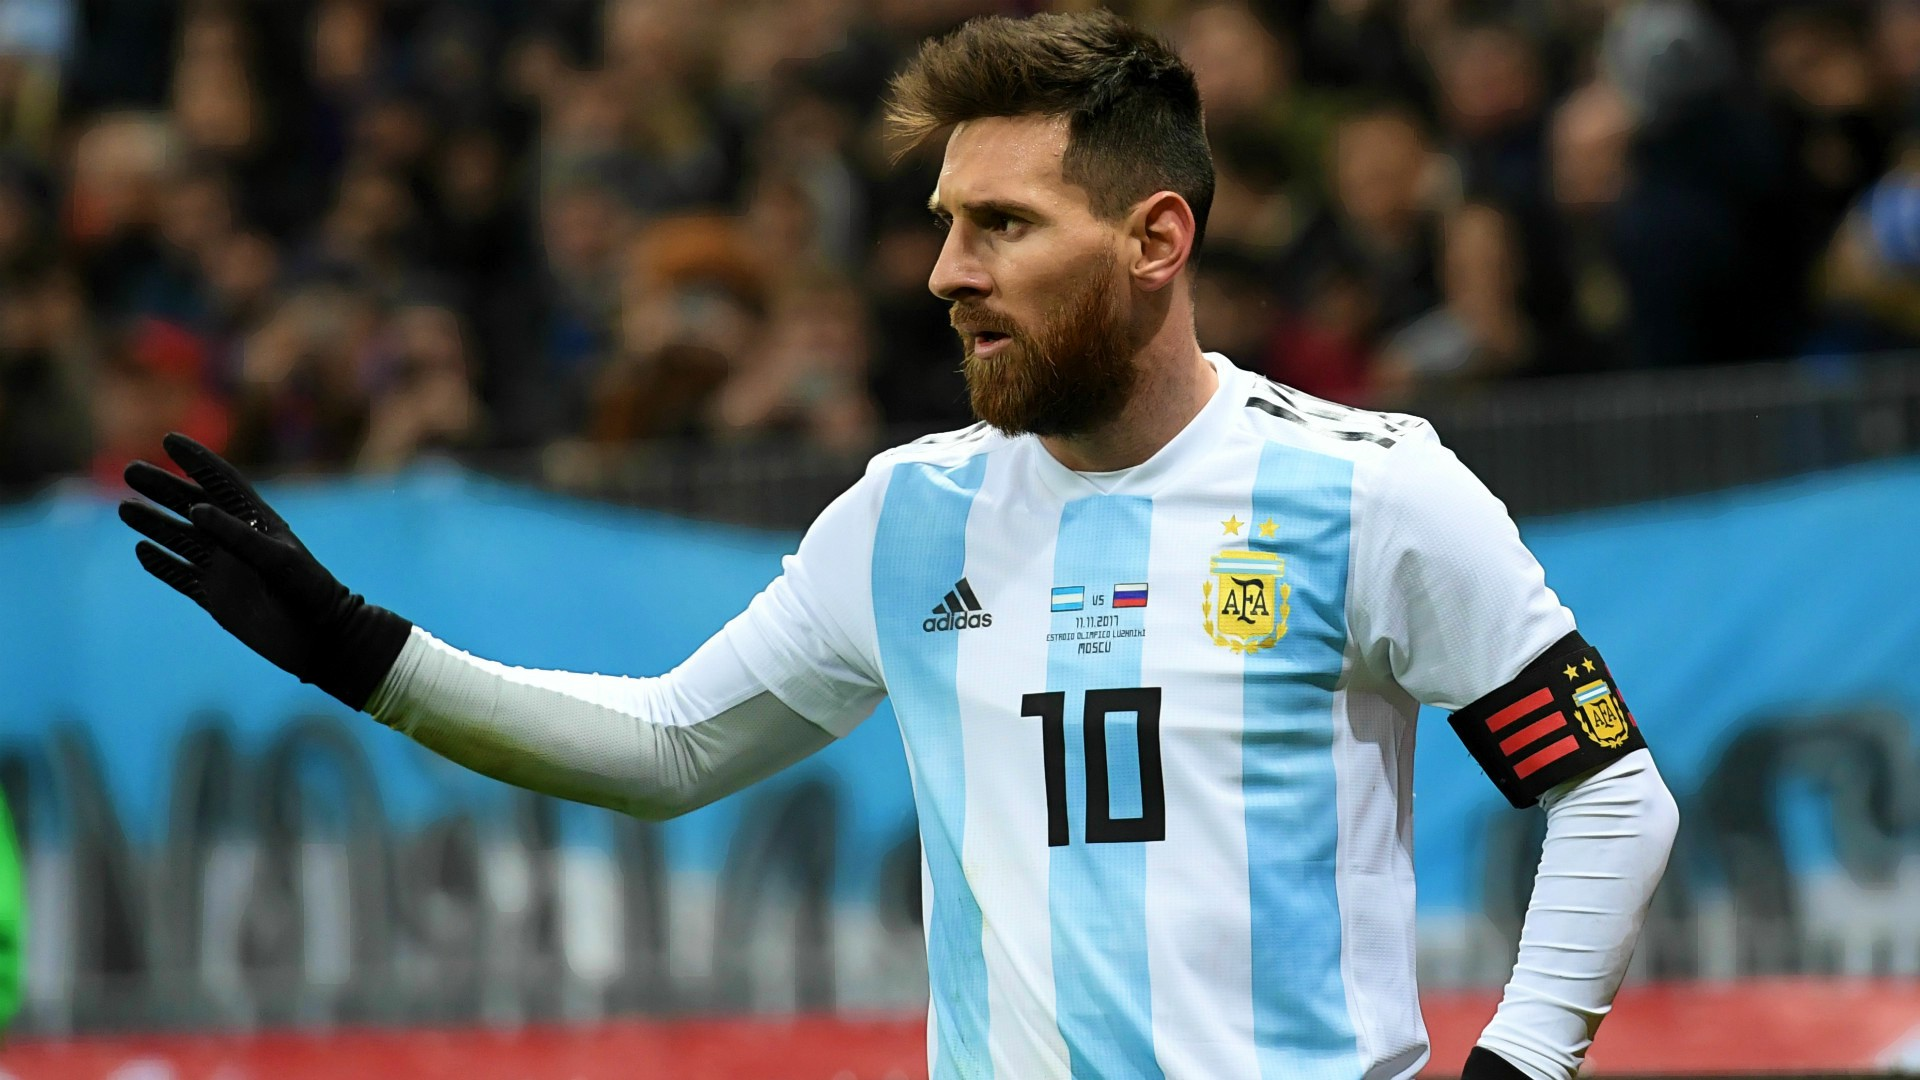 Can Lionel Messi Win Argentina a World Cup Title?